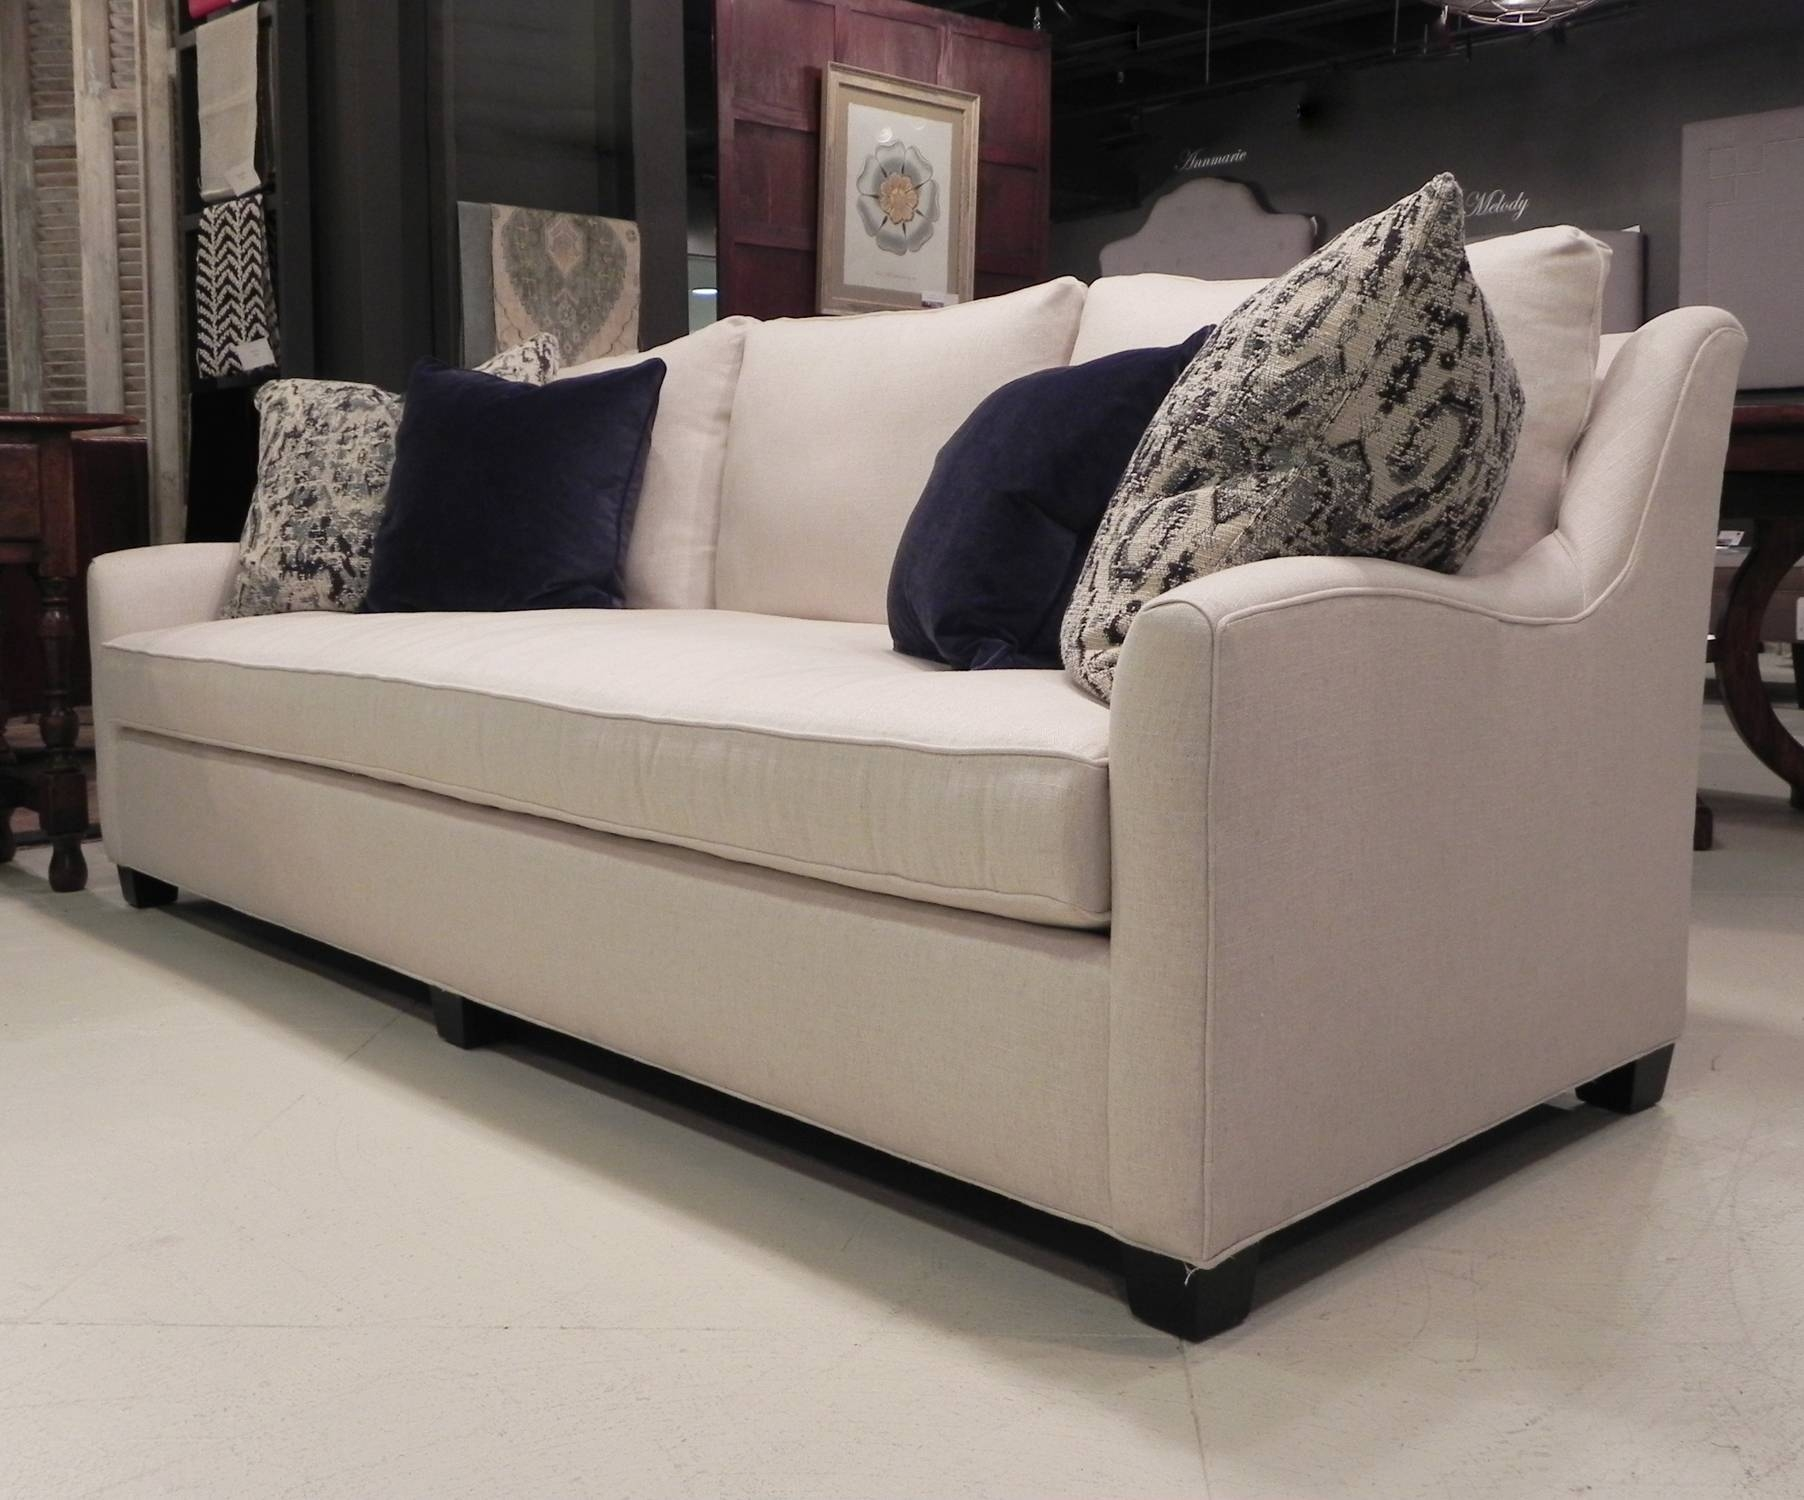 Upholstered Sofas & Chairs - Englishman's Fine Furnishings with regard to Bench Cushion Sofas (Image 14 of 15)